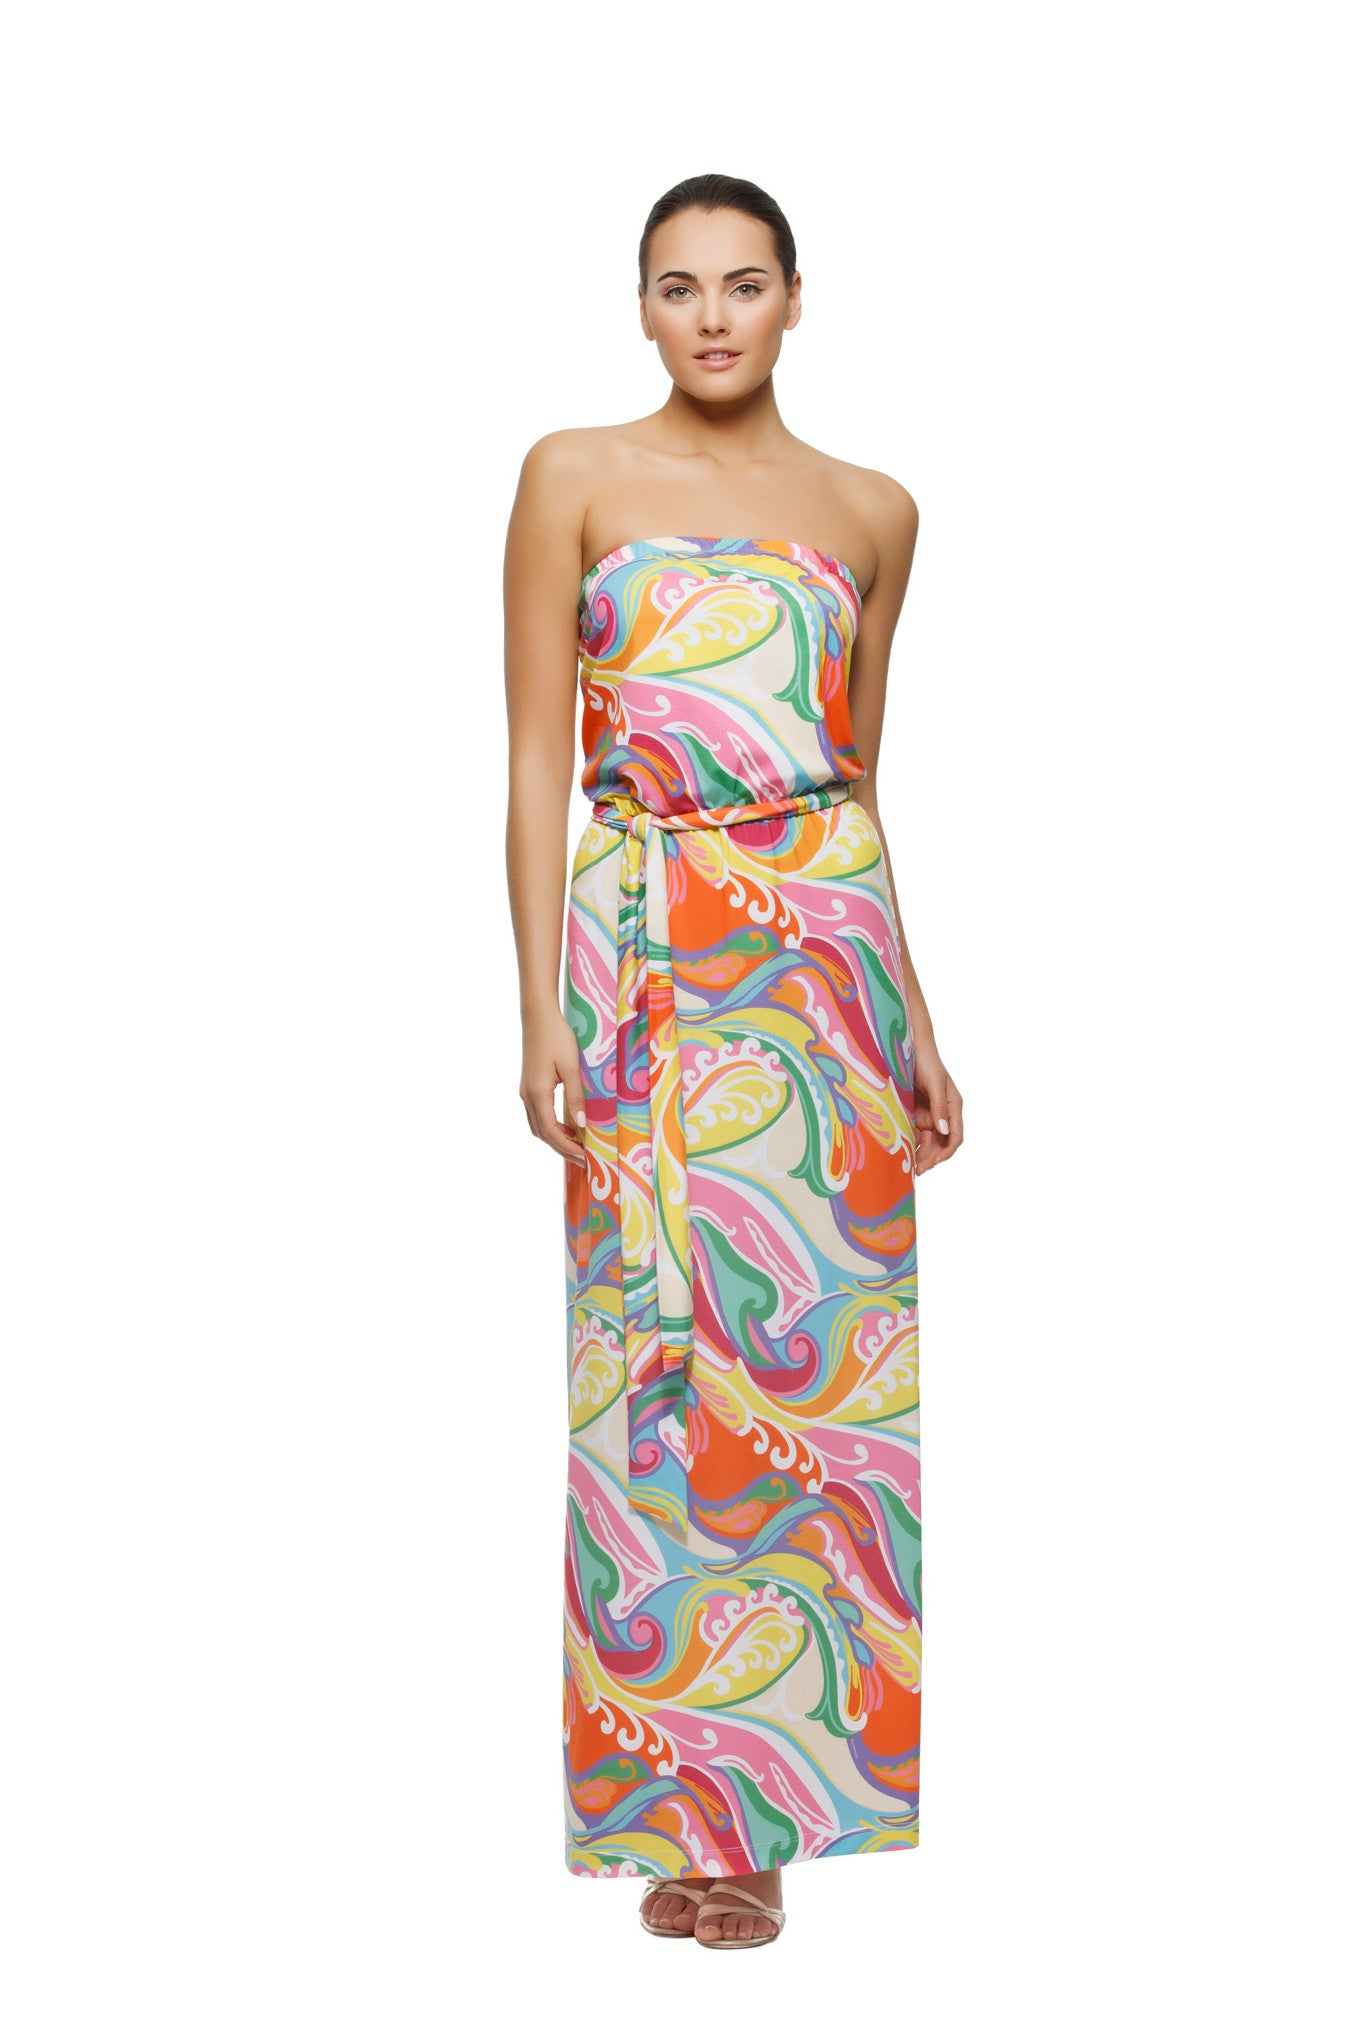 Resort Maxi Dresses by Rulon Reed   Made in the USA